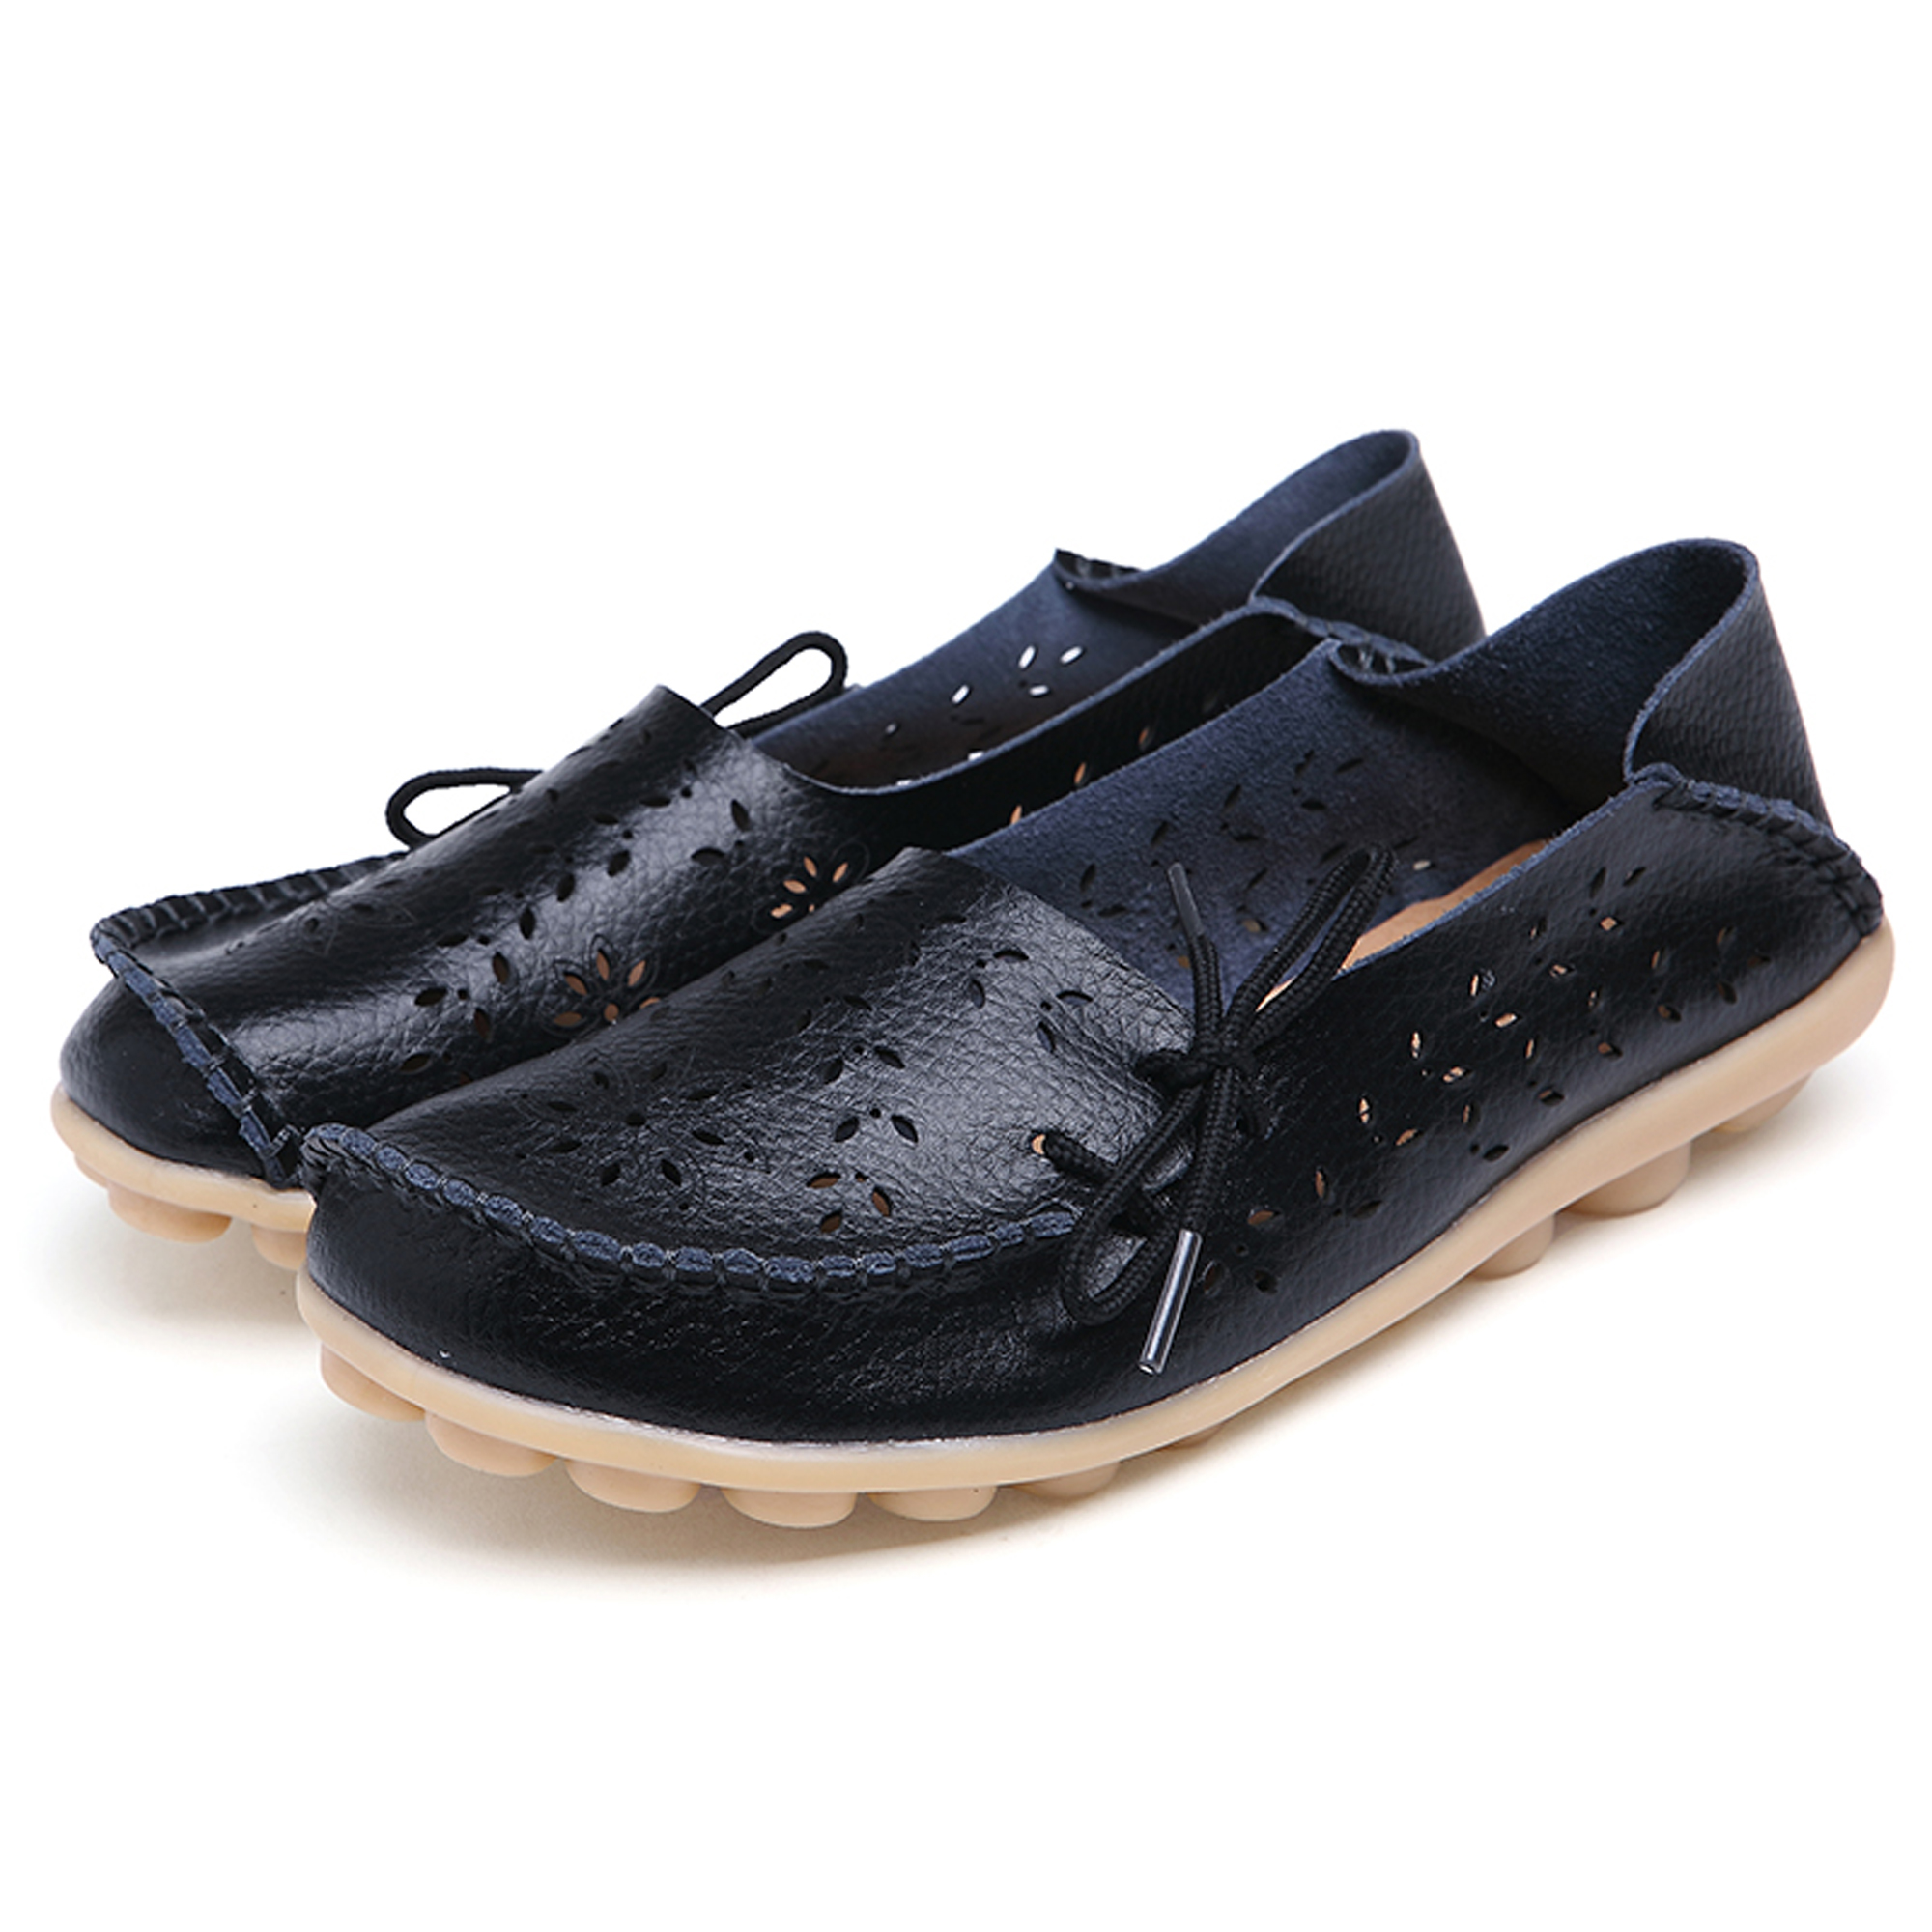 Women's Genuine Leather Loafers Casual Moccasin Driving S...